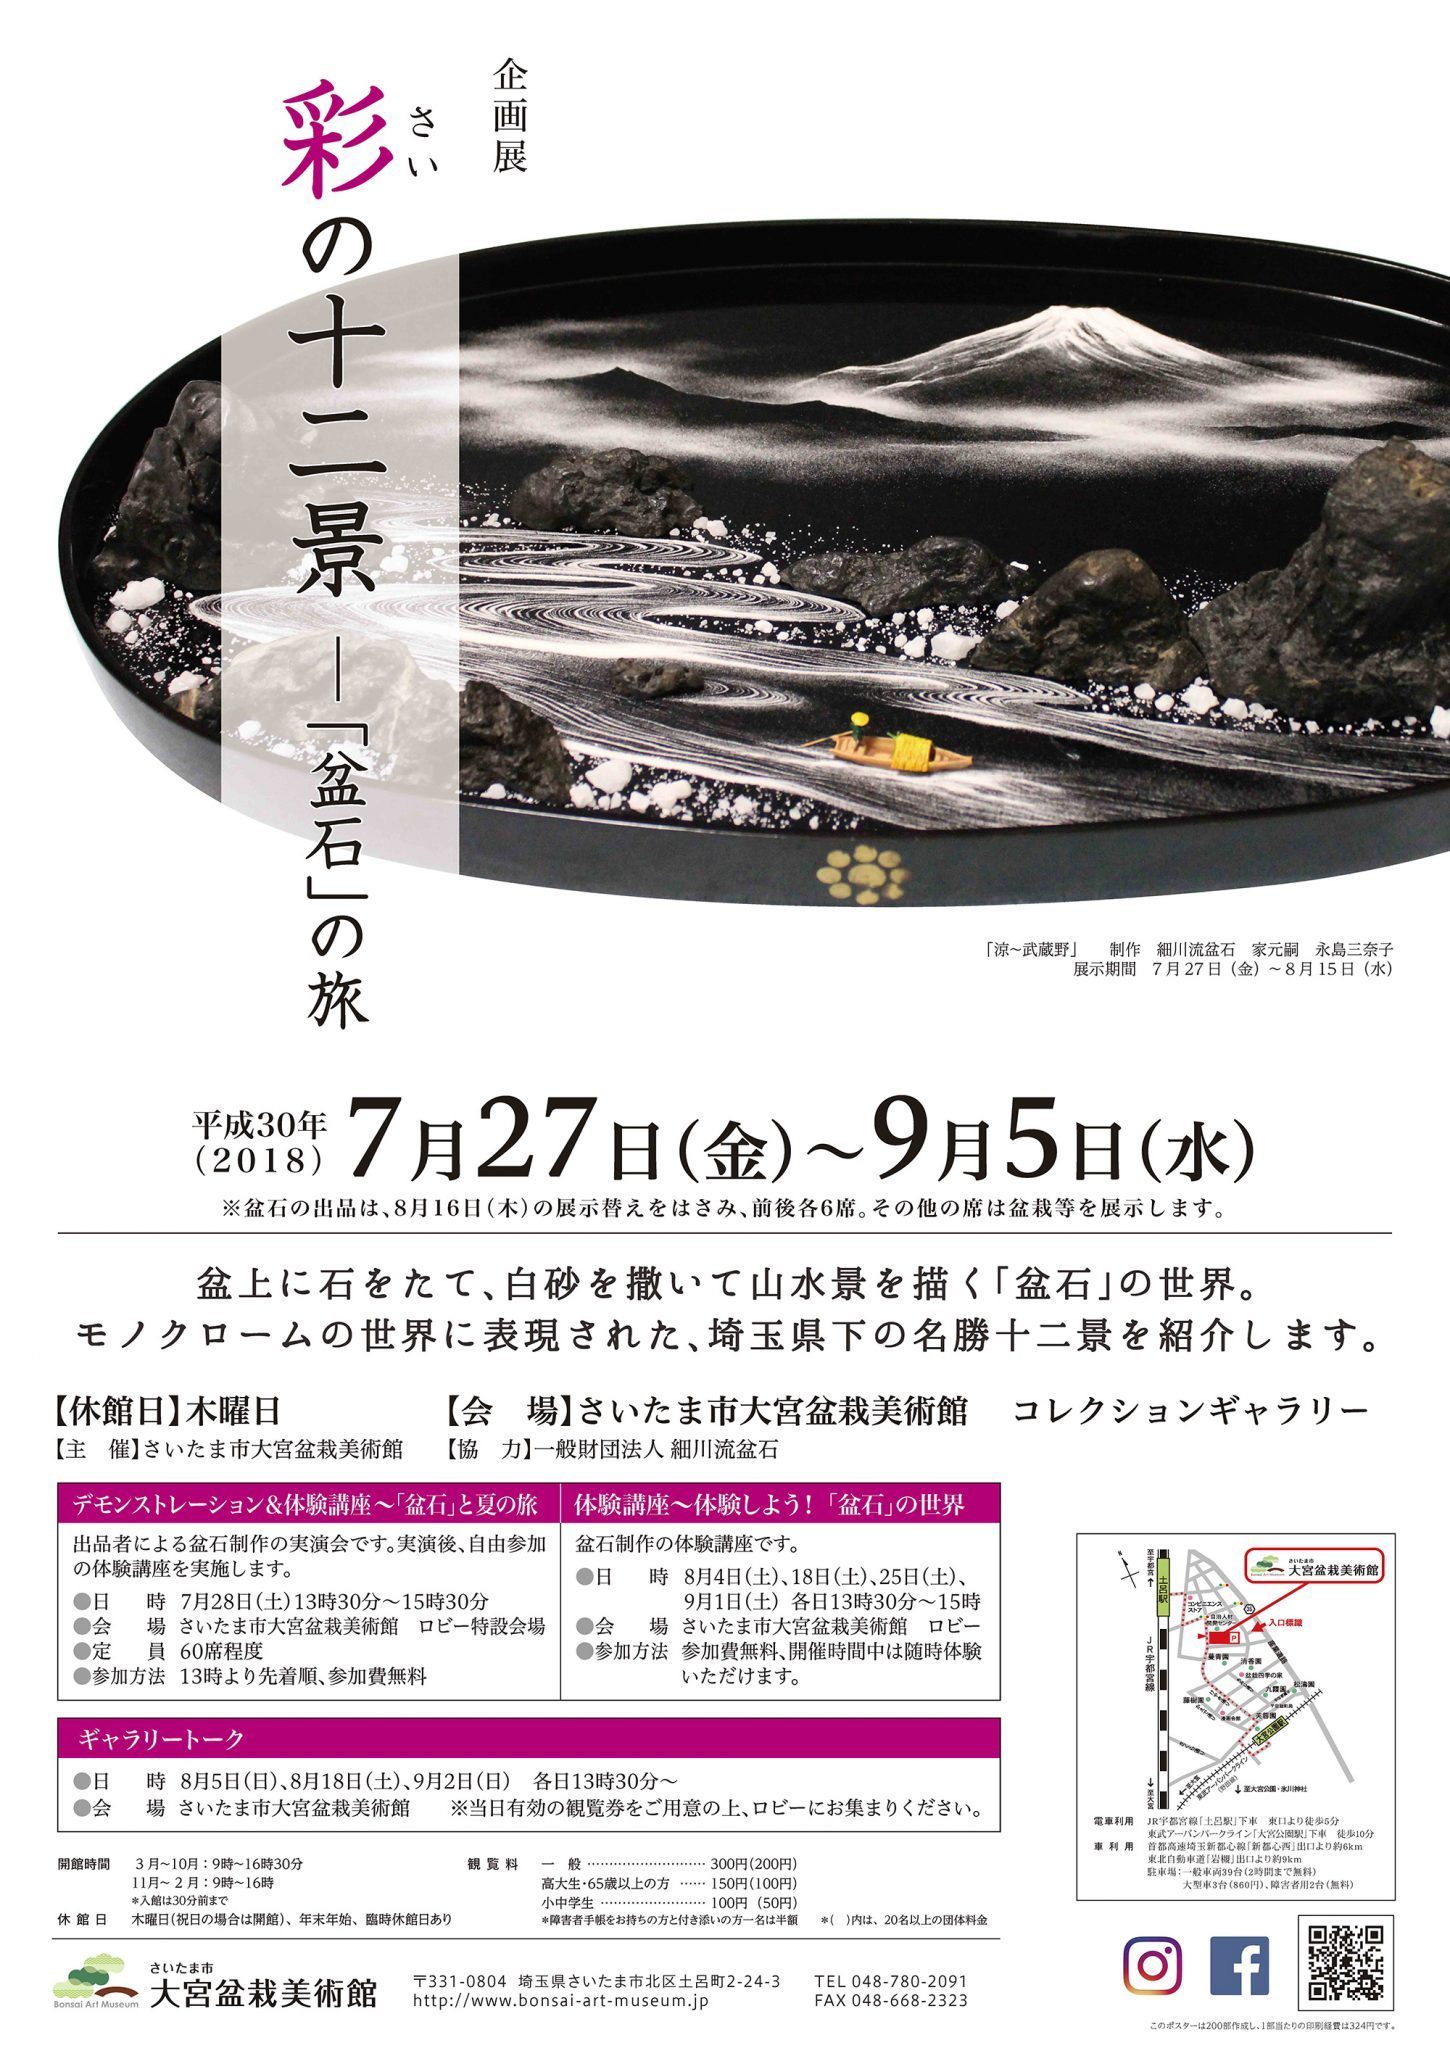 Bonseki: Miniature Landscape with Stones and White Sand on the Tray―Beautiful Twelve Scenery in Saitama Prefecture